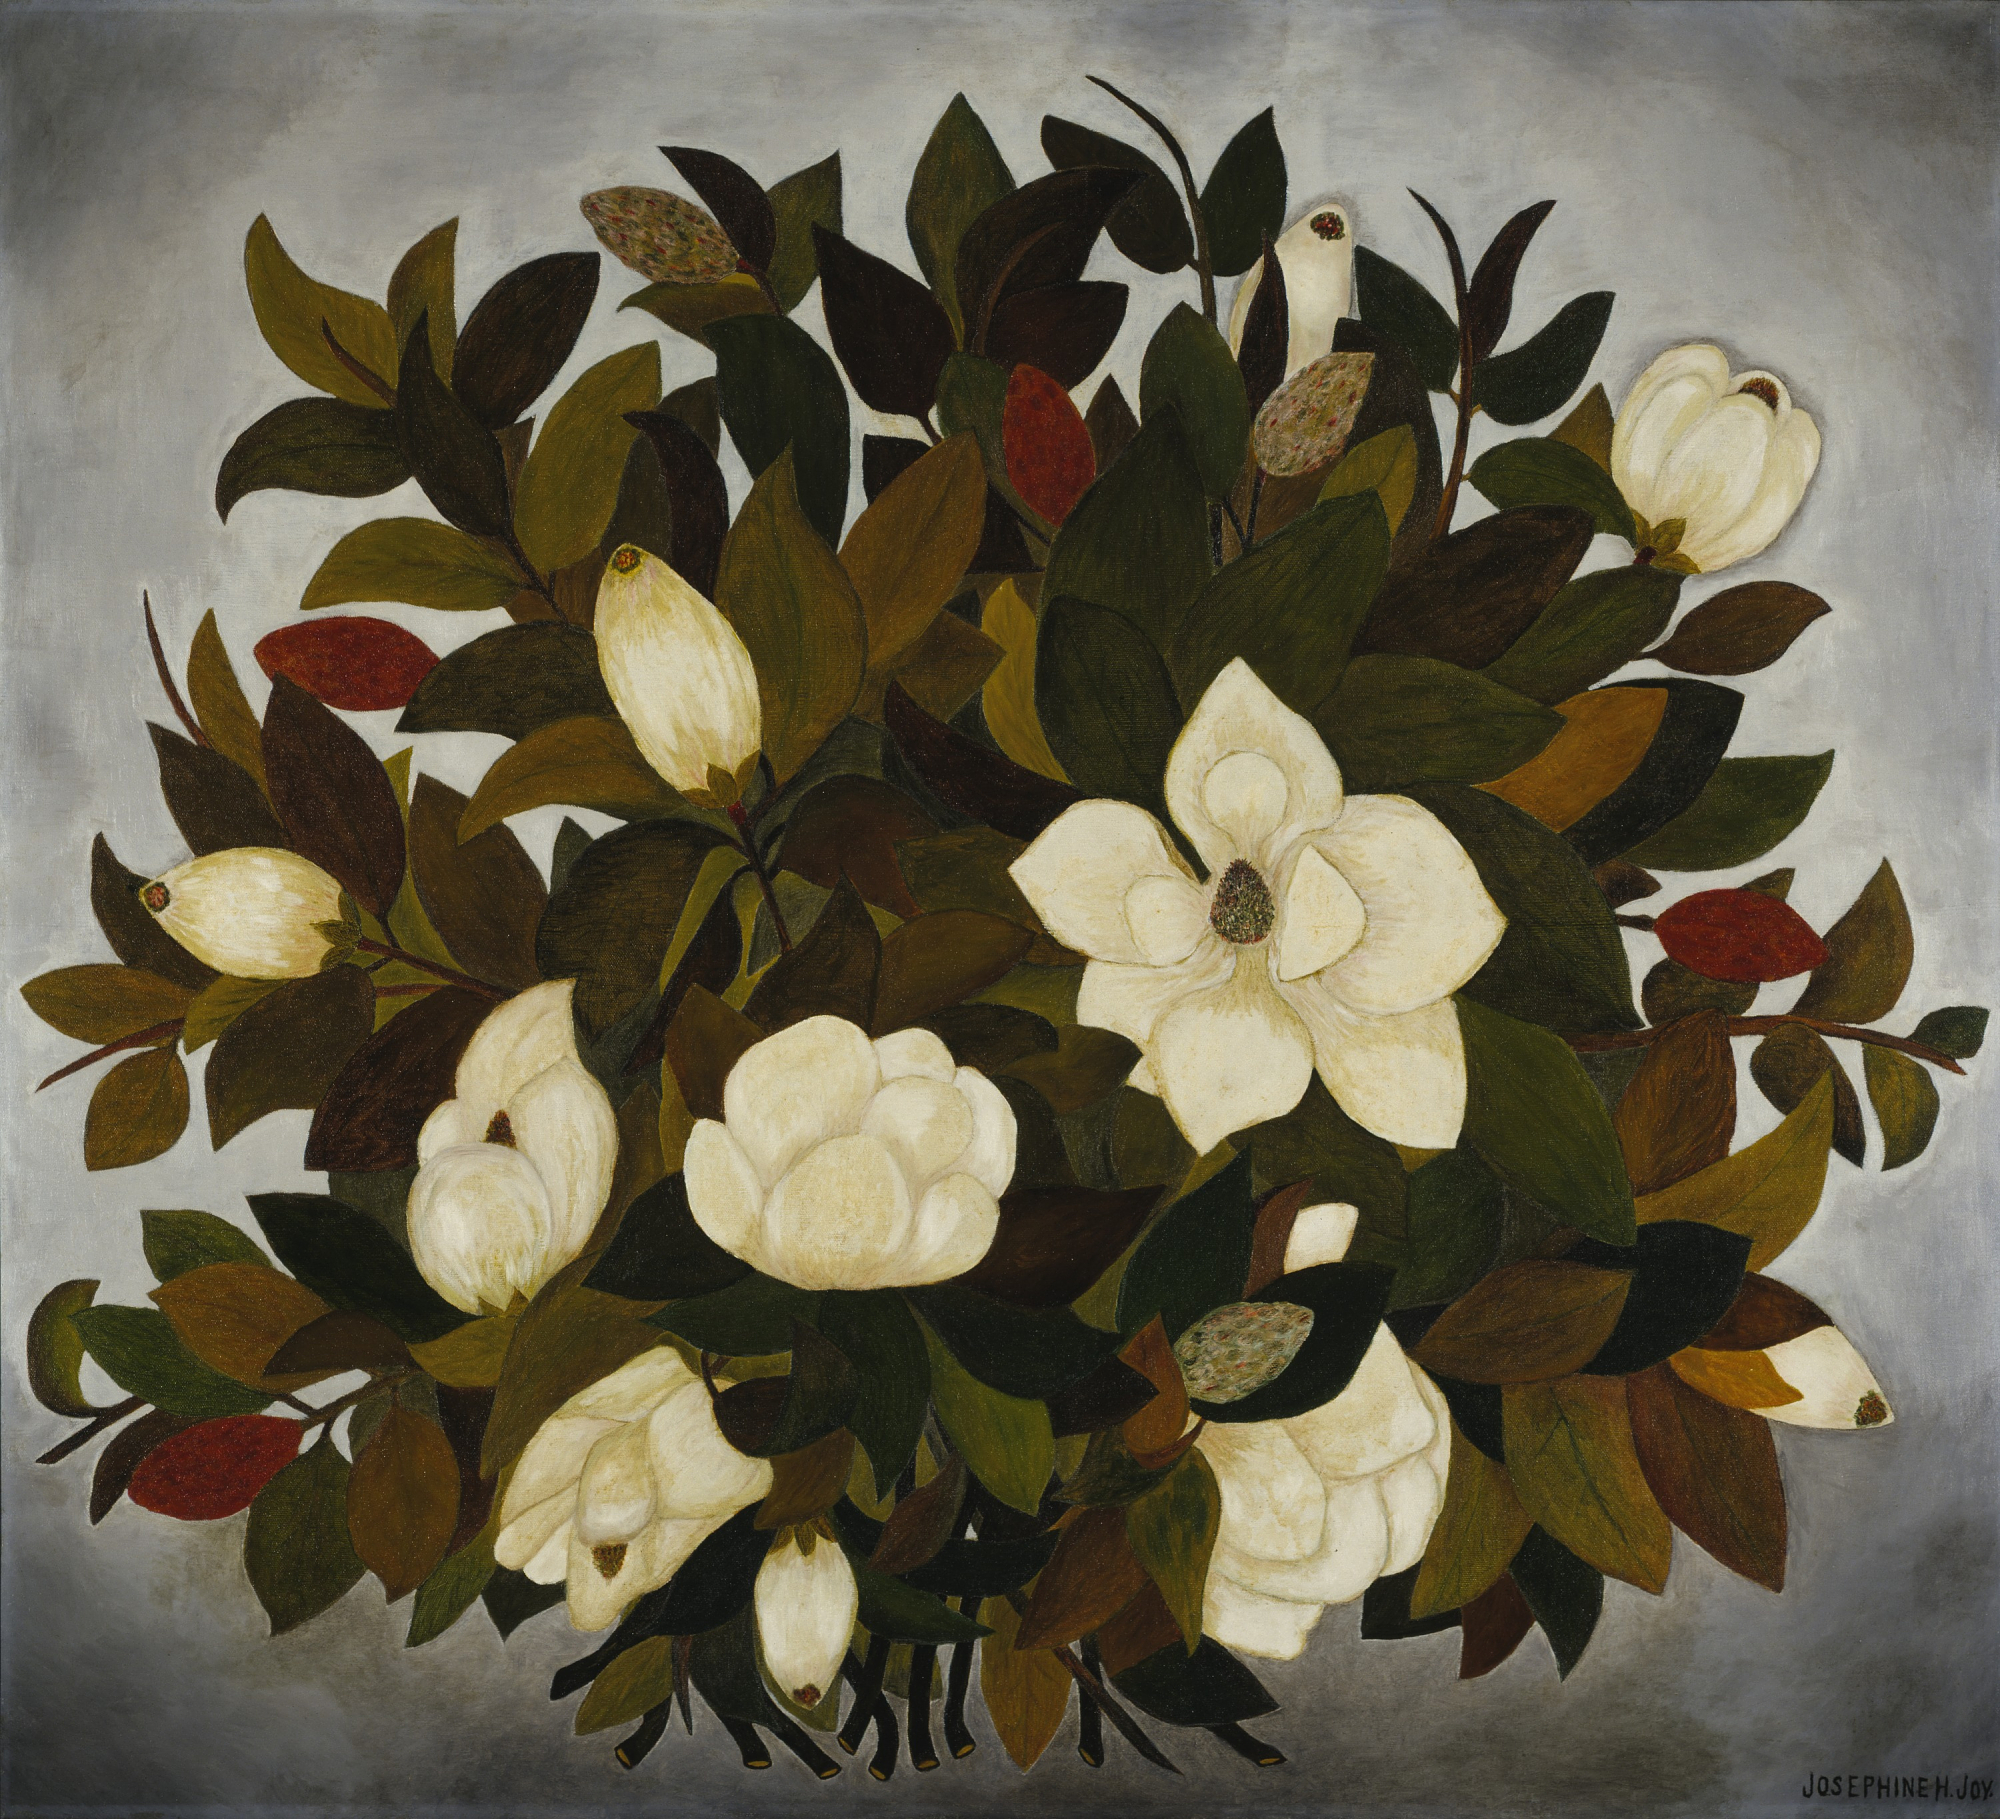 Josephine Joy, Magnolia Blossoms, ca. 1935-1941, oil on canvas, Smithsonian American Art Museum, Transfer from General Services Administration, 1971.447.44